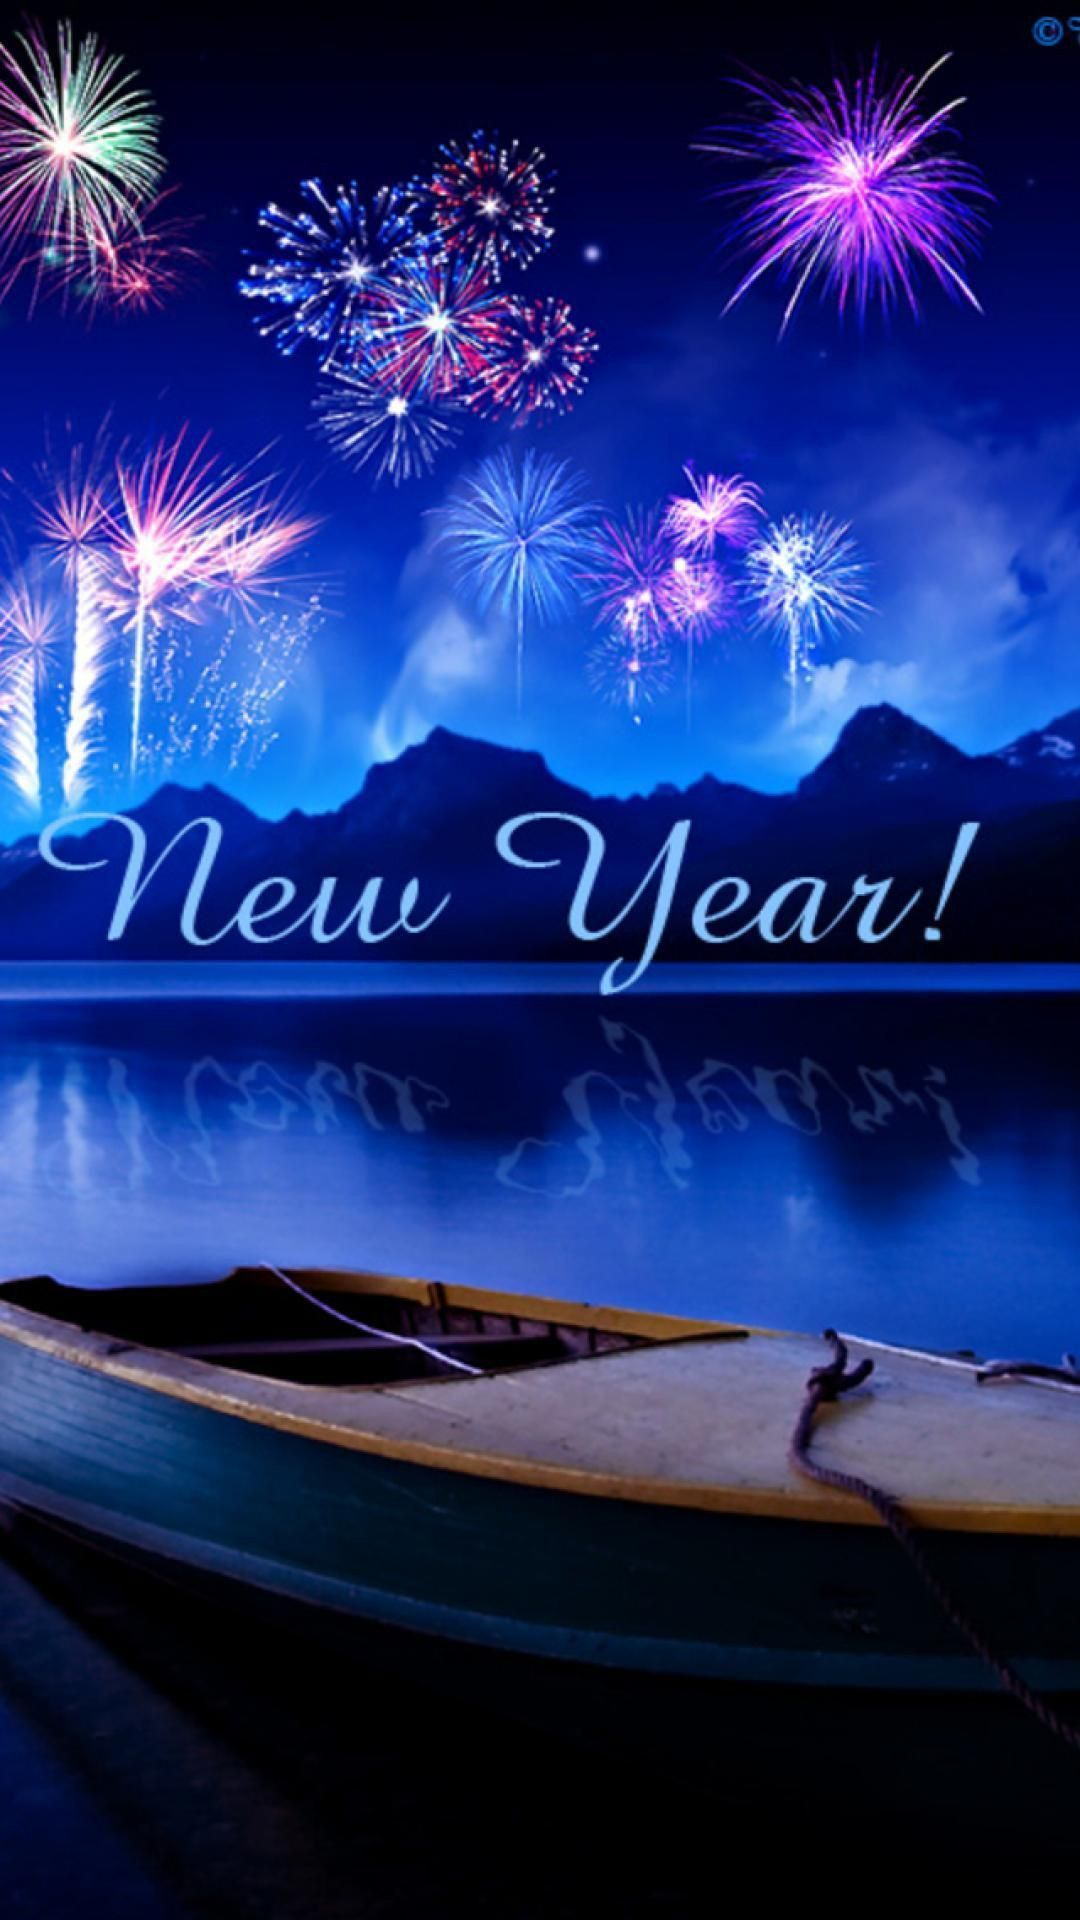 happy new year 2020 images hd, happy new year 2020 photo